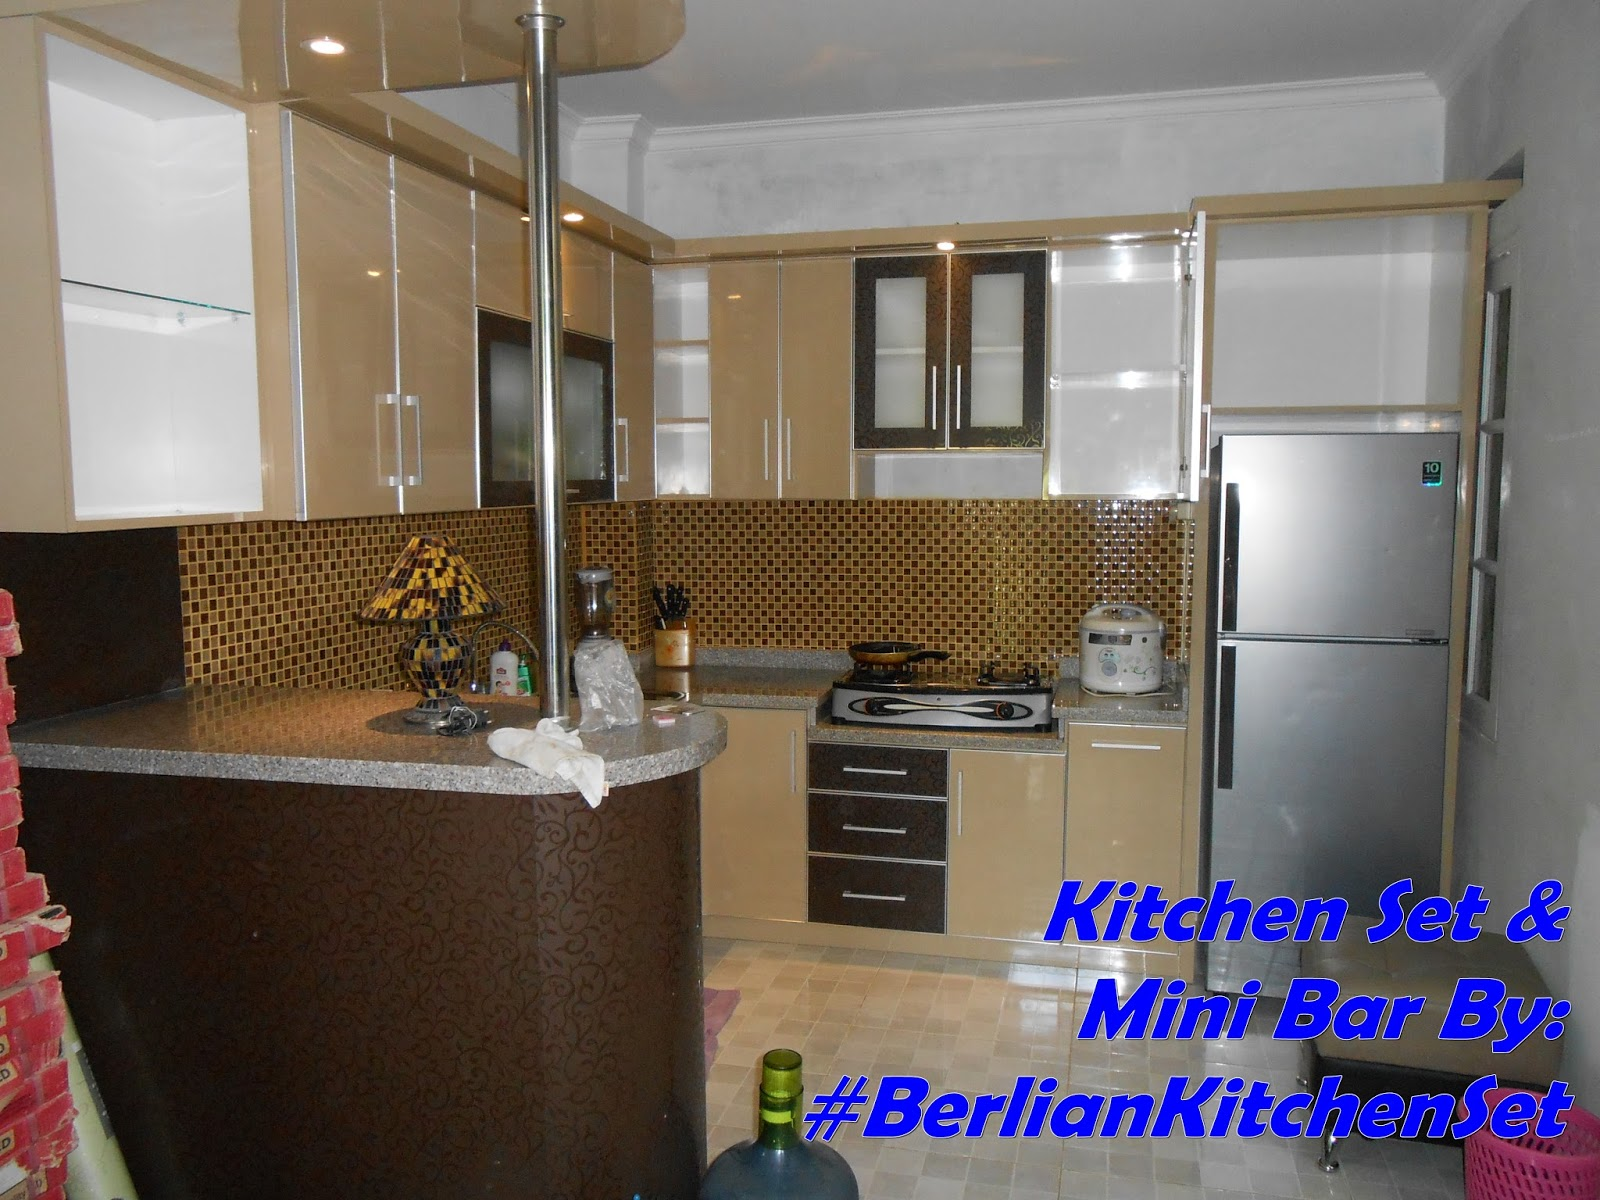 Desain meja mini bar dapur leter l berlian kitchen set